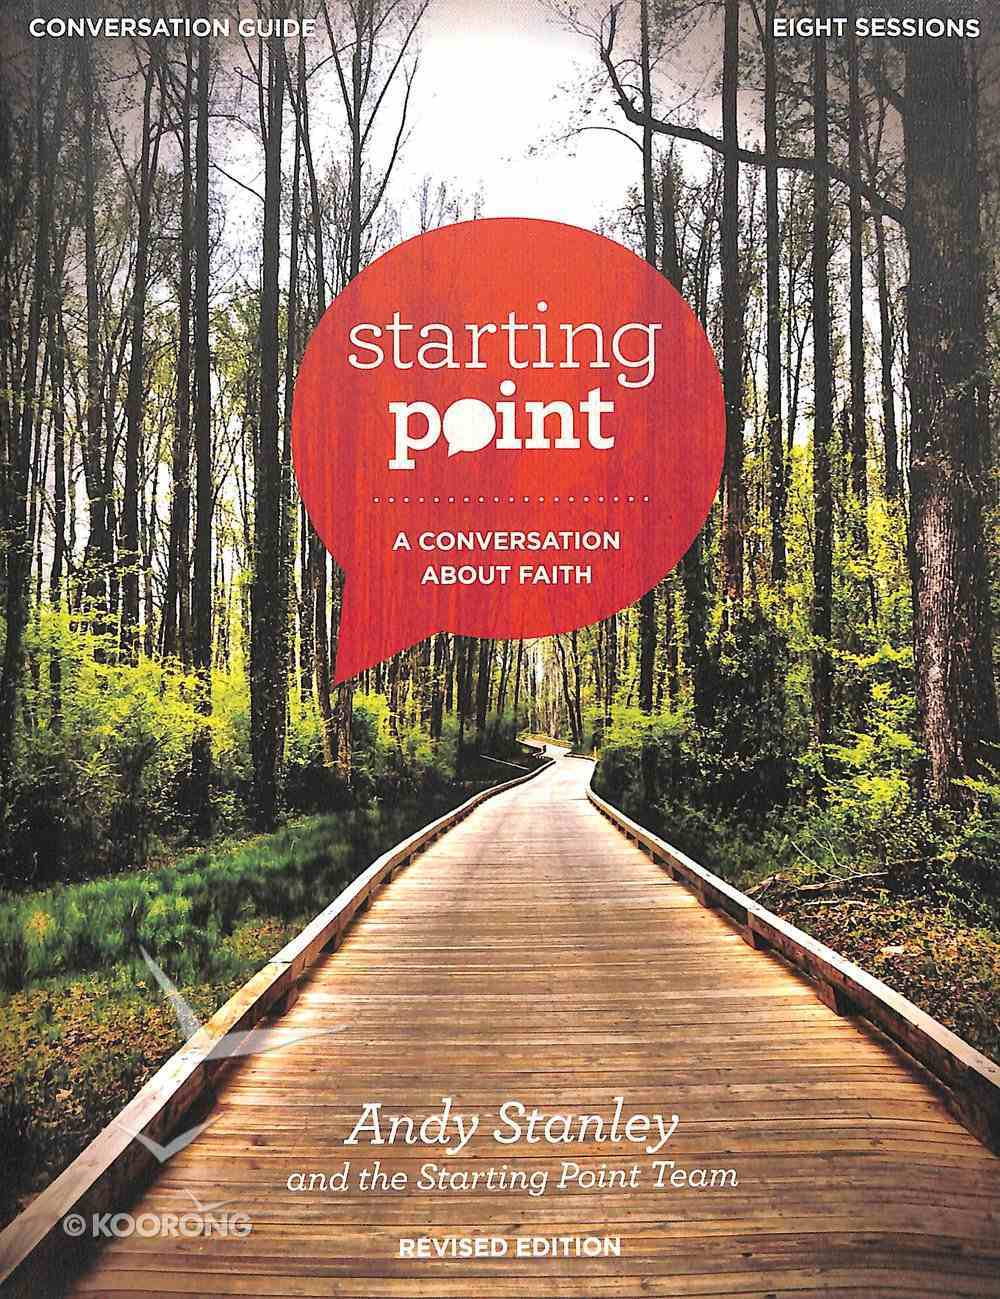 Starting Point (Conversation Guide With Dvd) Pack